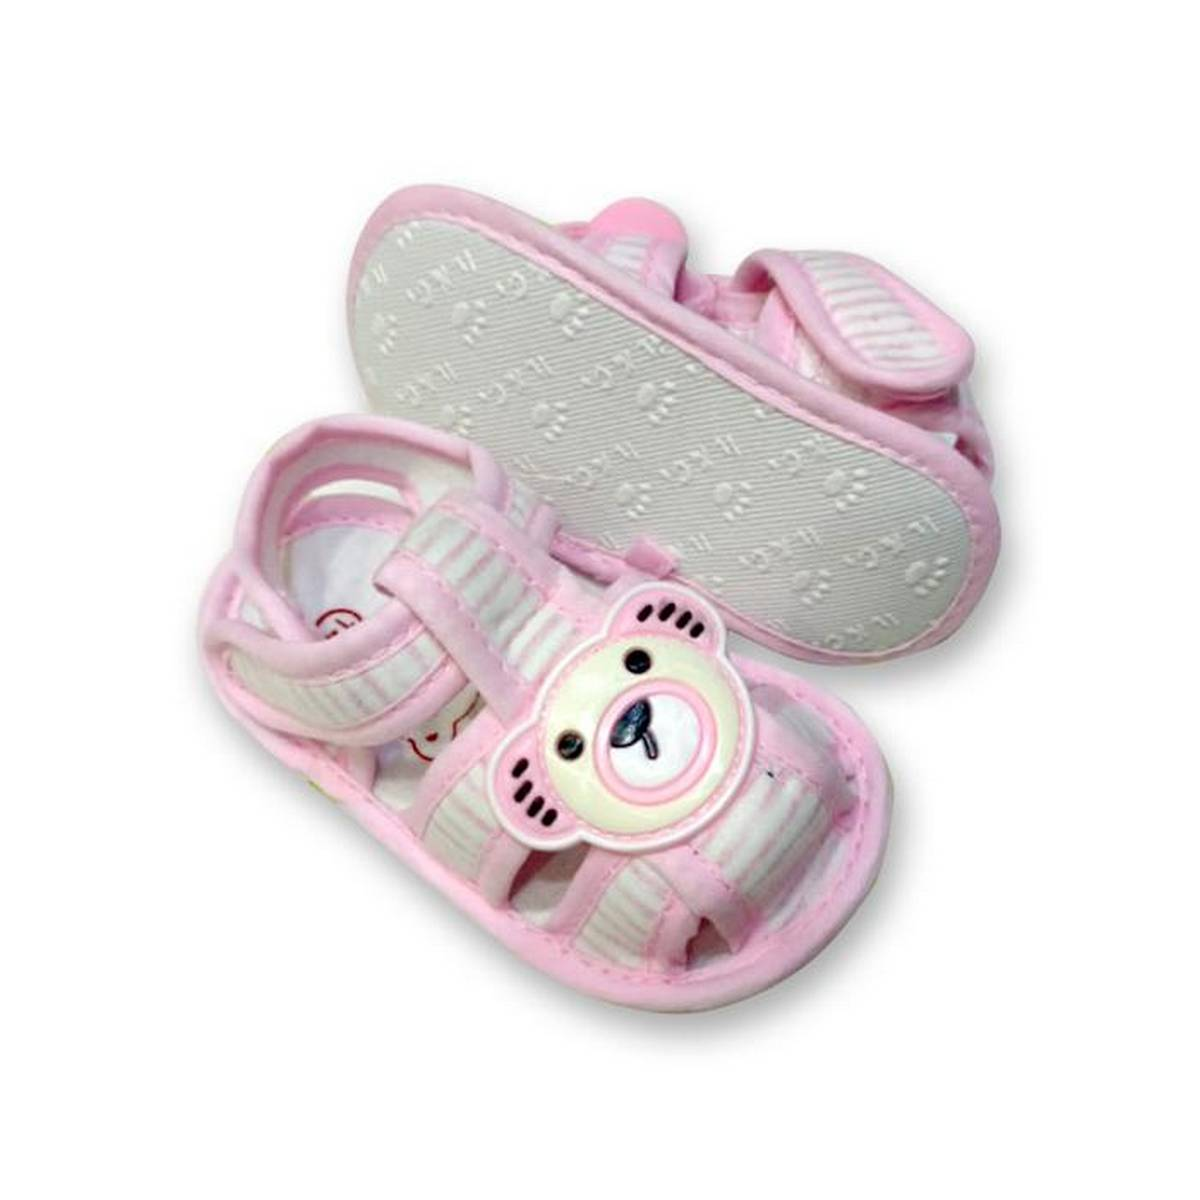 Fashion Baby Imported Soft Bottom Sandals